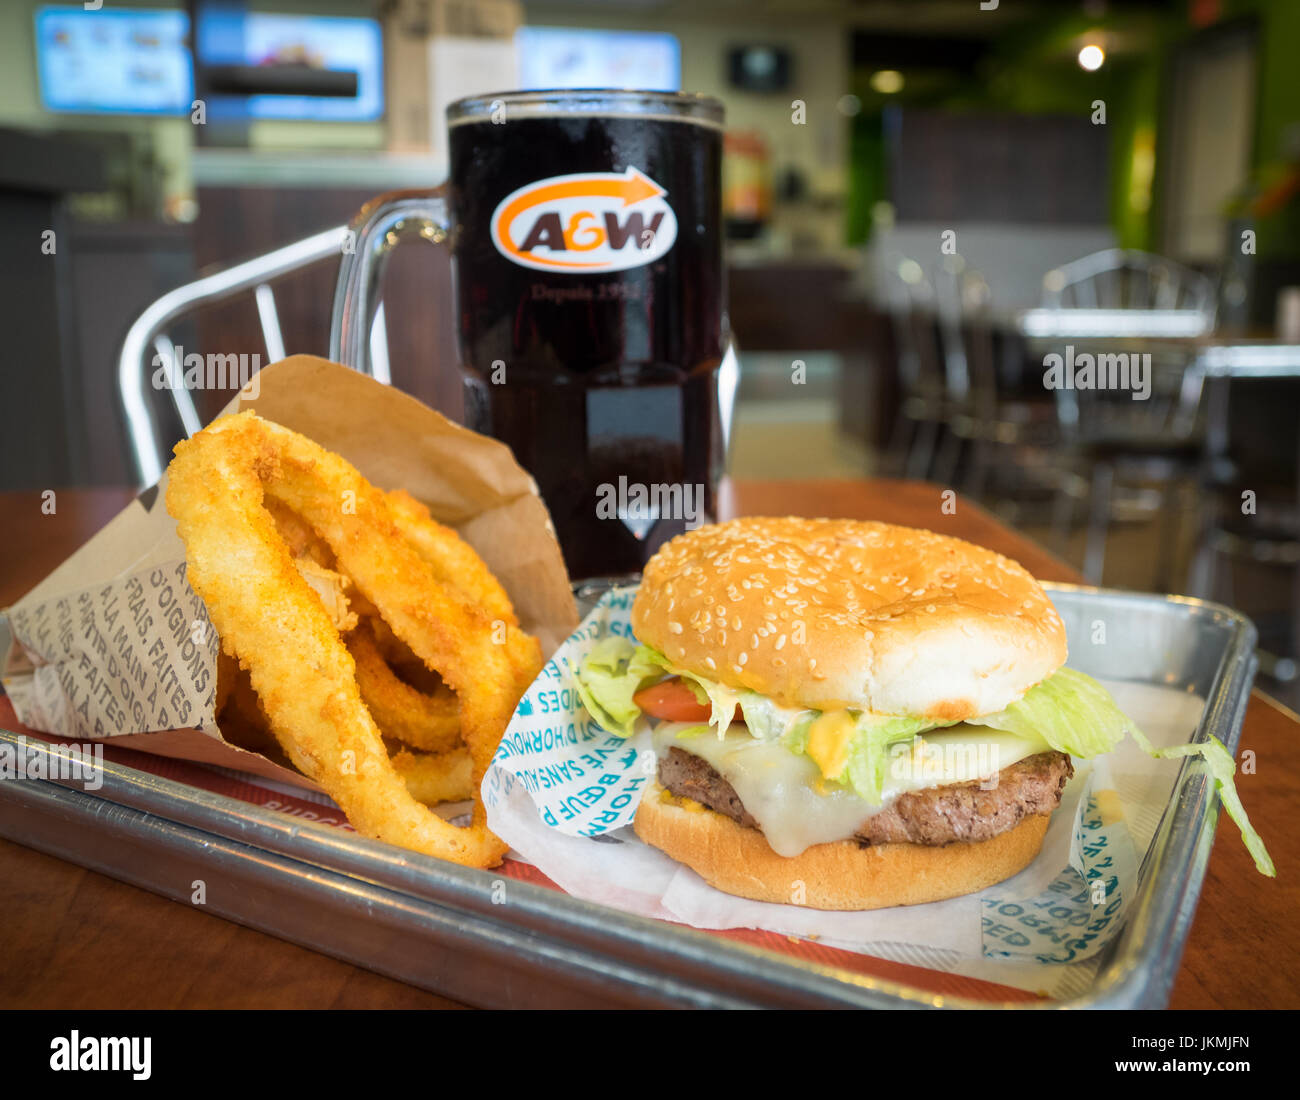 A Mozza Burger, onion rings, and mug of root beer from A&W, a Canadian fast food restaurant. - Stock Image